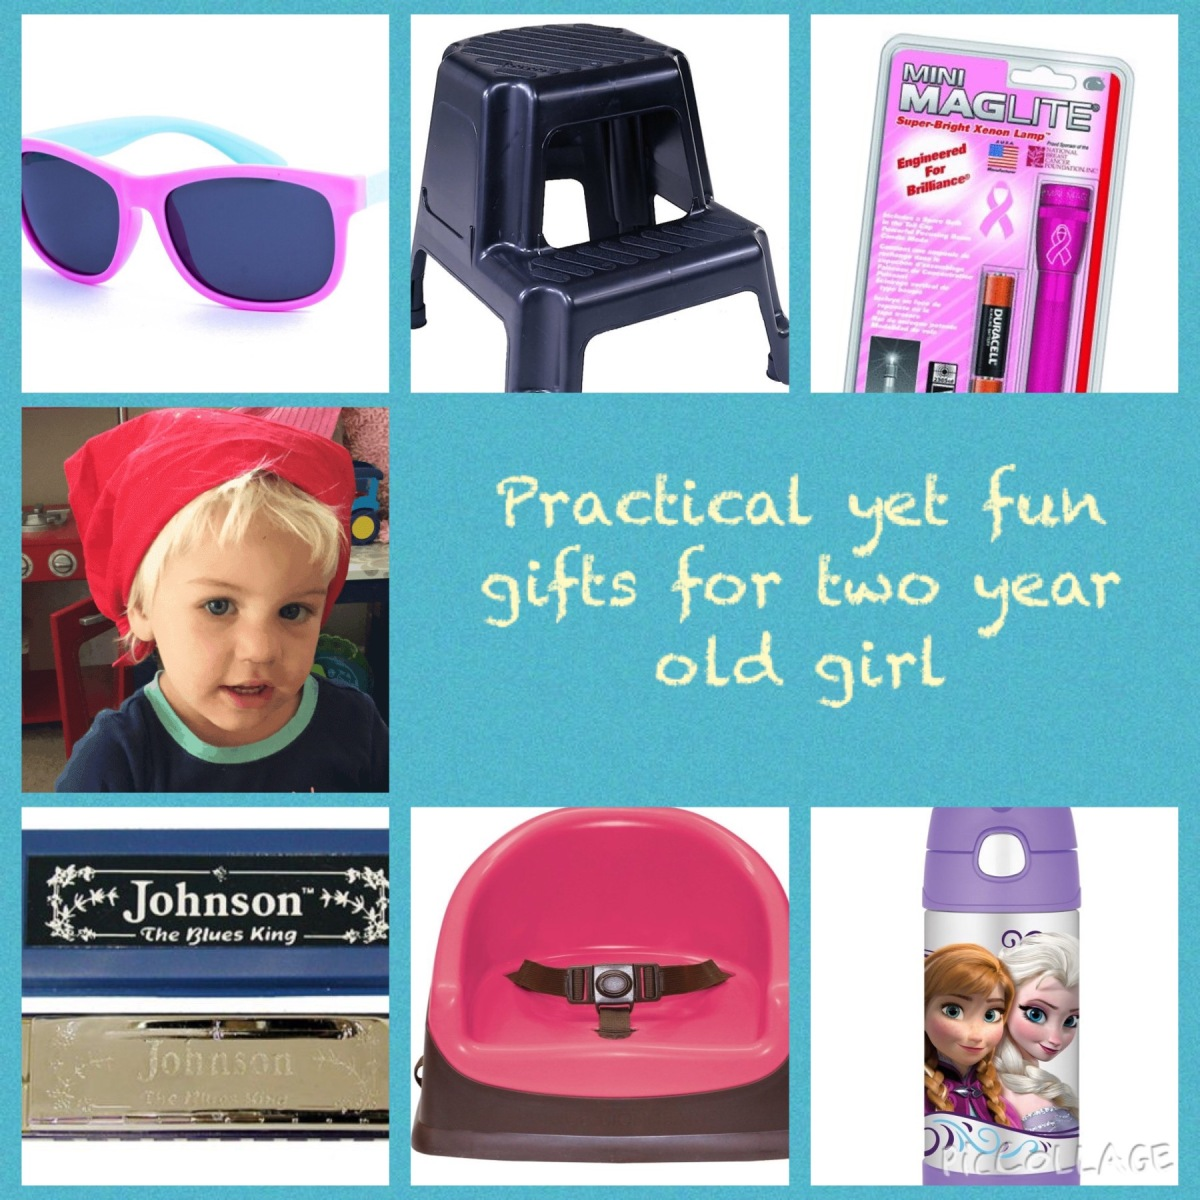 Best gifts for a two year old girl, the answer might shock you!